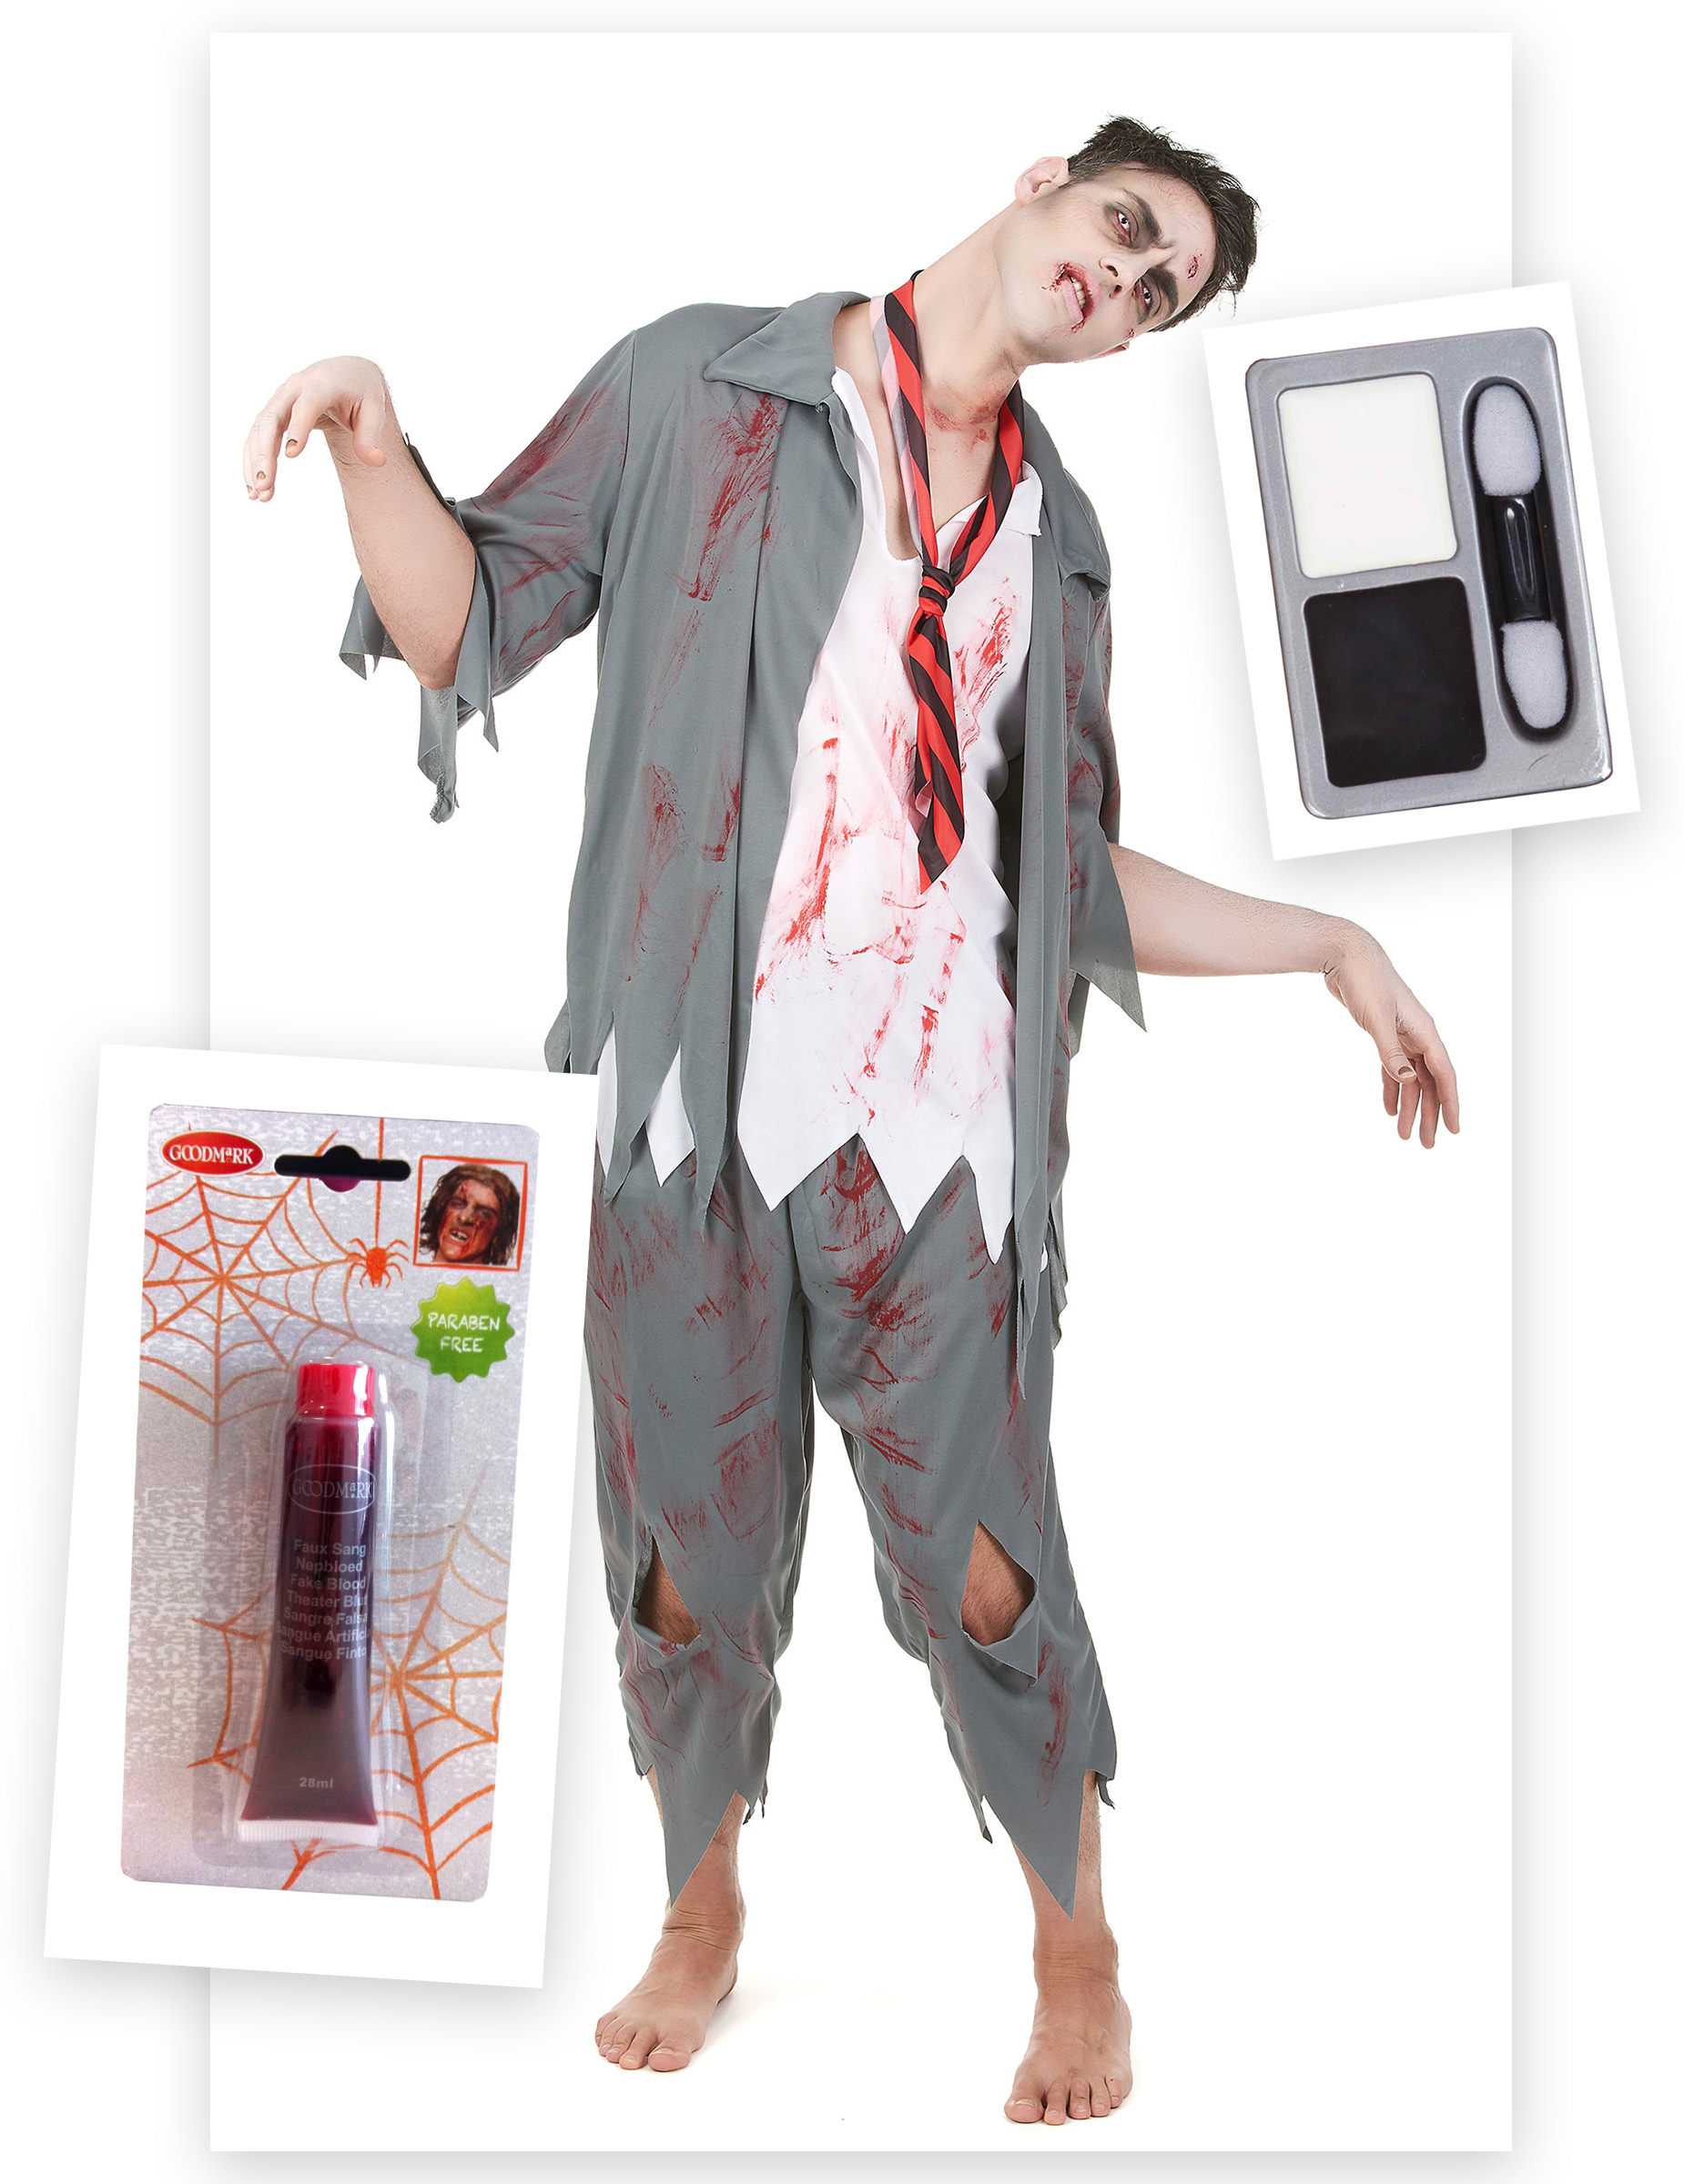 pack d guisement zombie homme avec faux sang et maquillage halloween deguise toi achat de. Black Bedroom Furniture Sets. Home Design Ideas